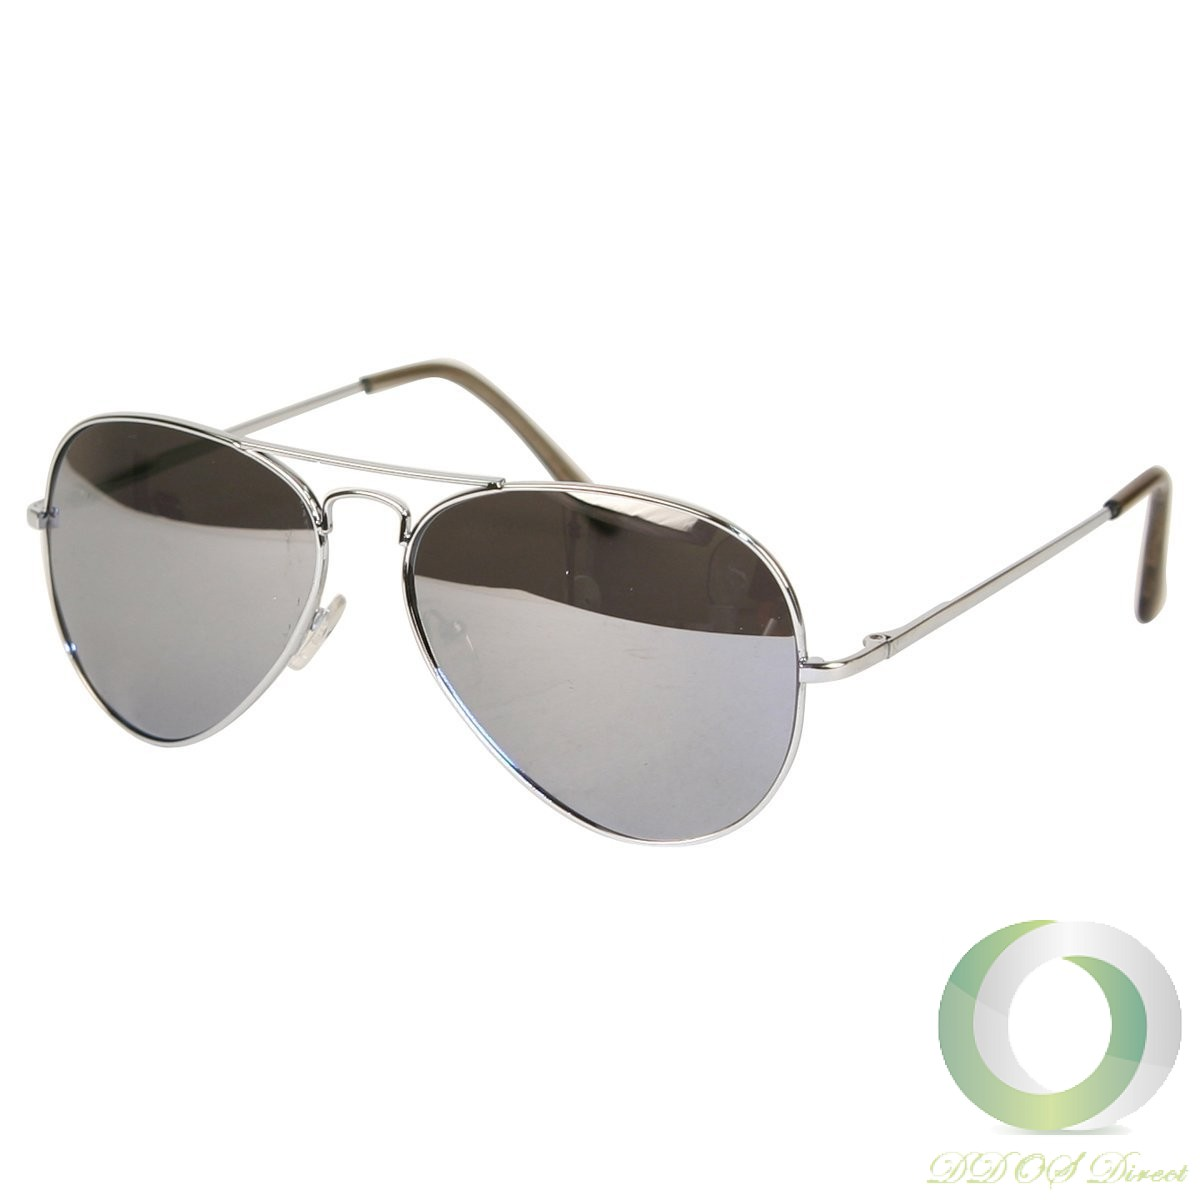 Shine with flash lenses & mirrored sunglasses from Ray Ban. The mirror coating reduces glare & shows off your unique personality. Free shipping and free returns on all orders.